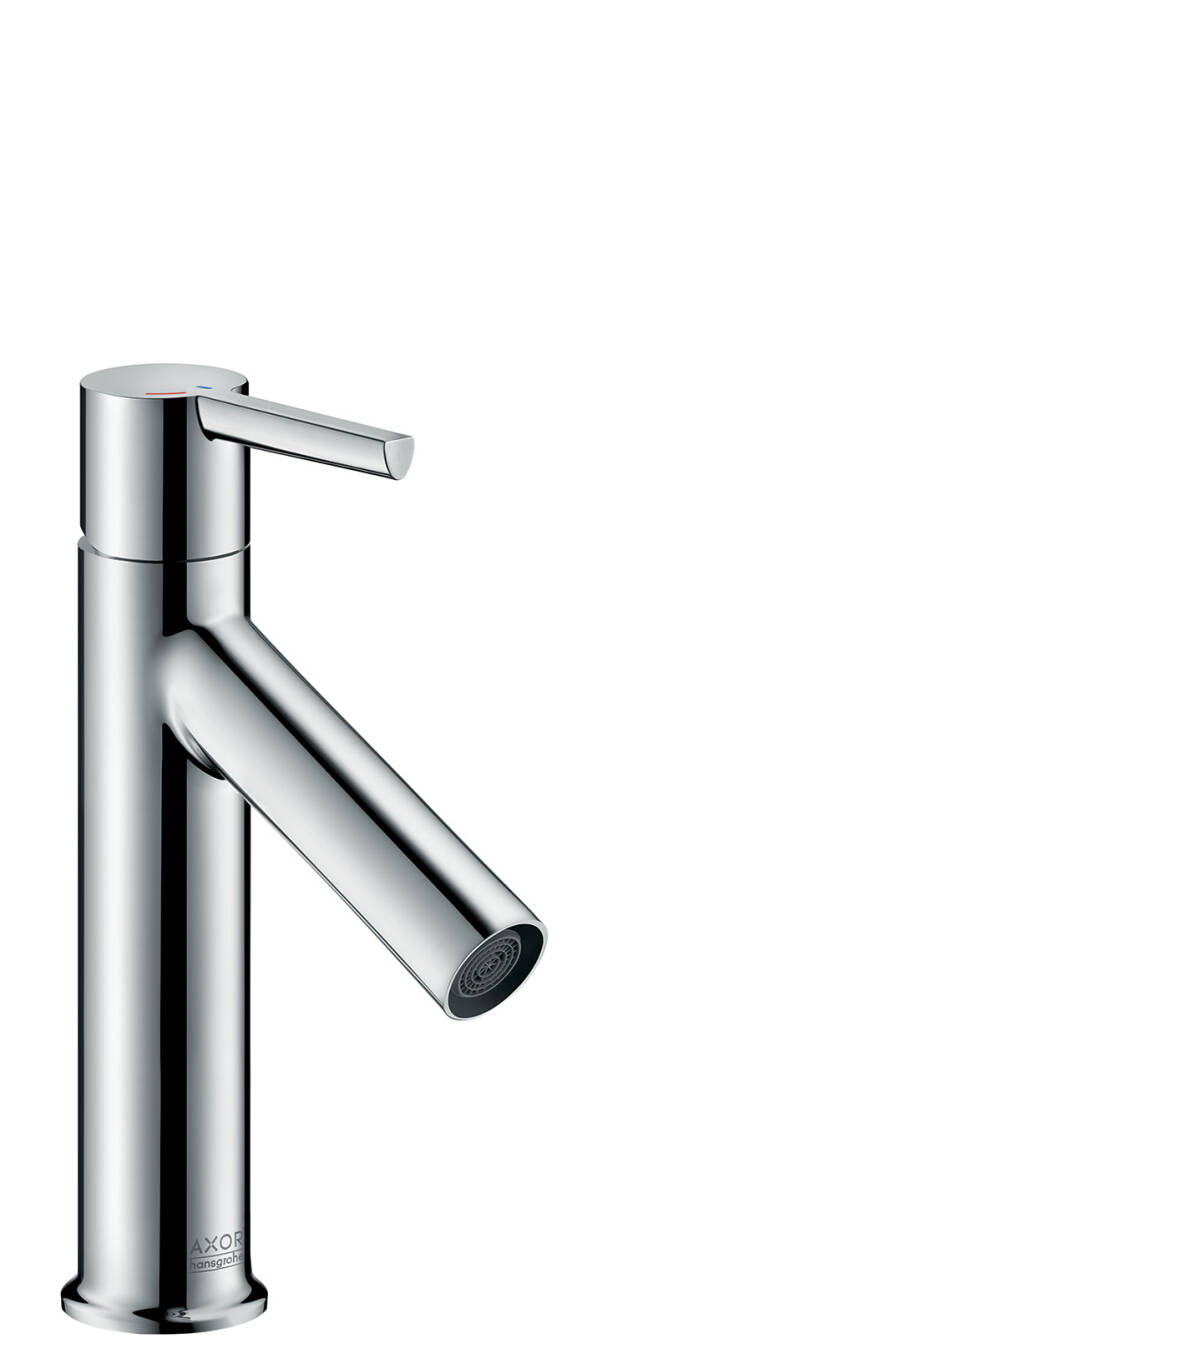 Single lever basin mixer 100 CoolStart with lever handle and pop-up waste set, Chrome, 10007000